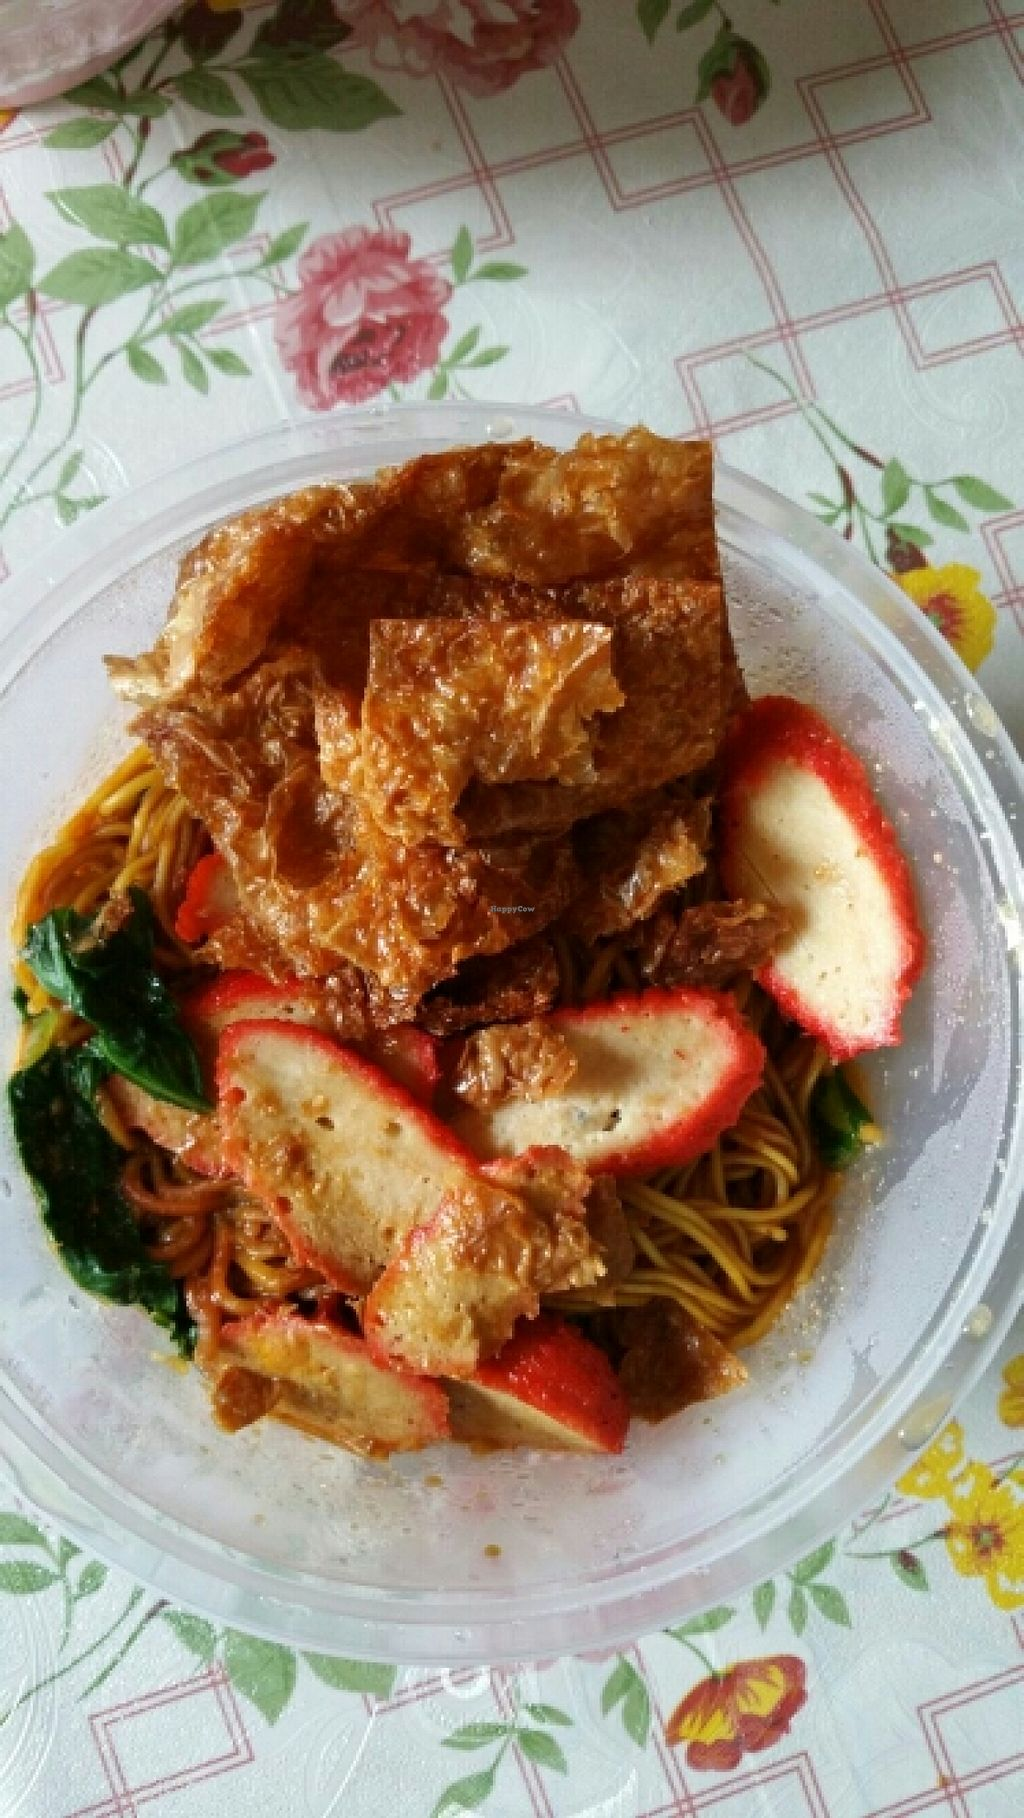 """Photo of Kwan Inn Vegetarian Stall - Chang Cheng Mee Wah Coffeeshop  by <a href=""""/members/profile/JimmySeah"""">JimmySeah</a> <br/>char siew (mock bbq pork) noodle <br/> December 21, 2015  - <a href='/contact/abuse/image/67375/129363'>Report</a>"""